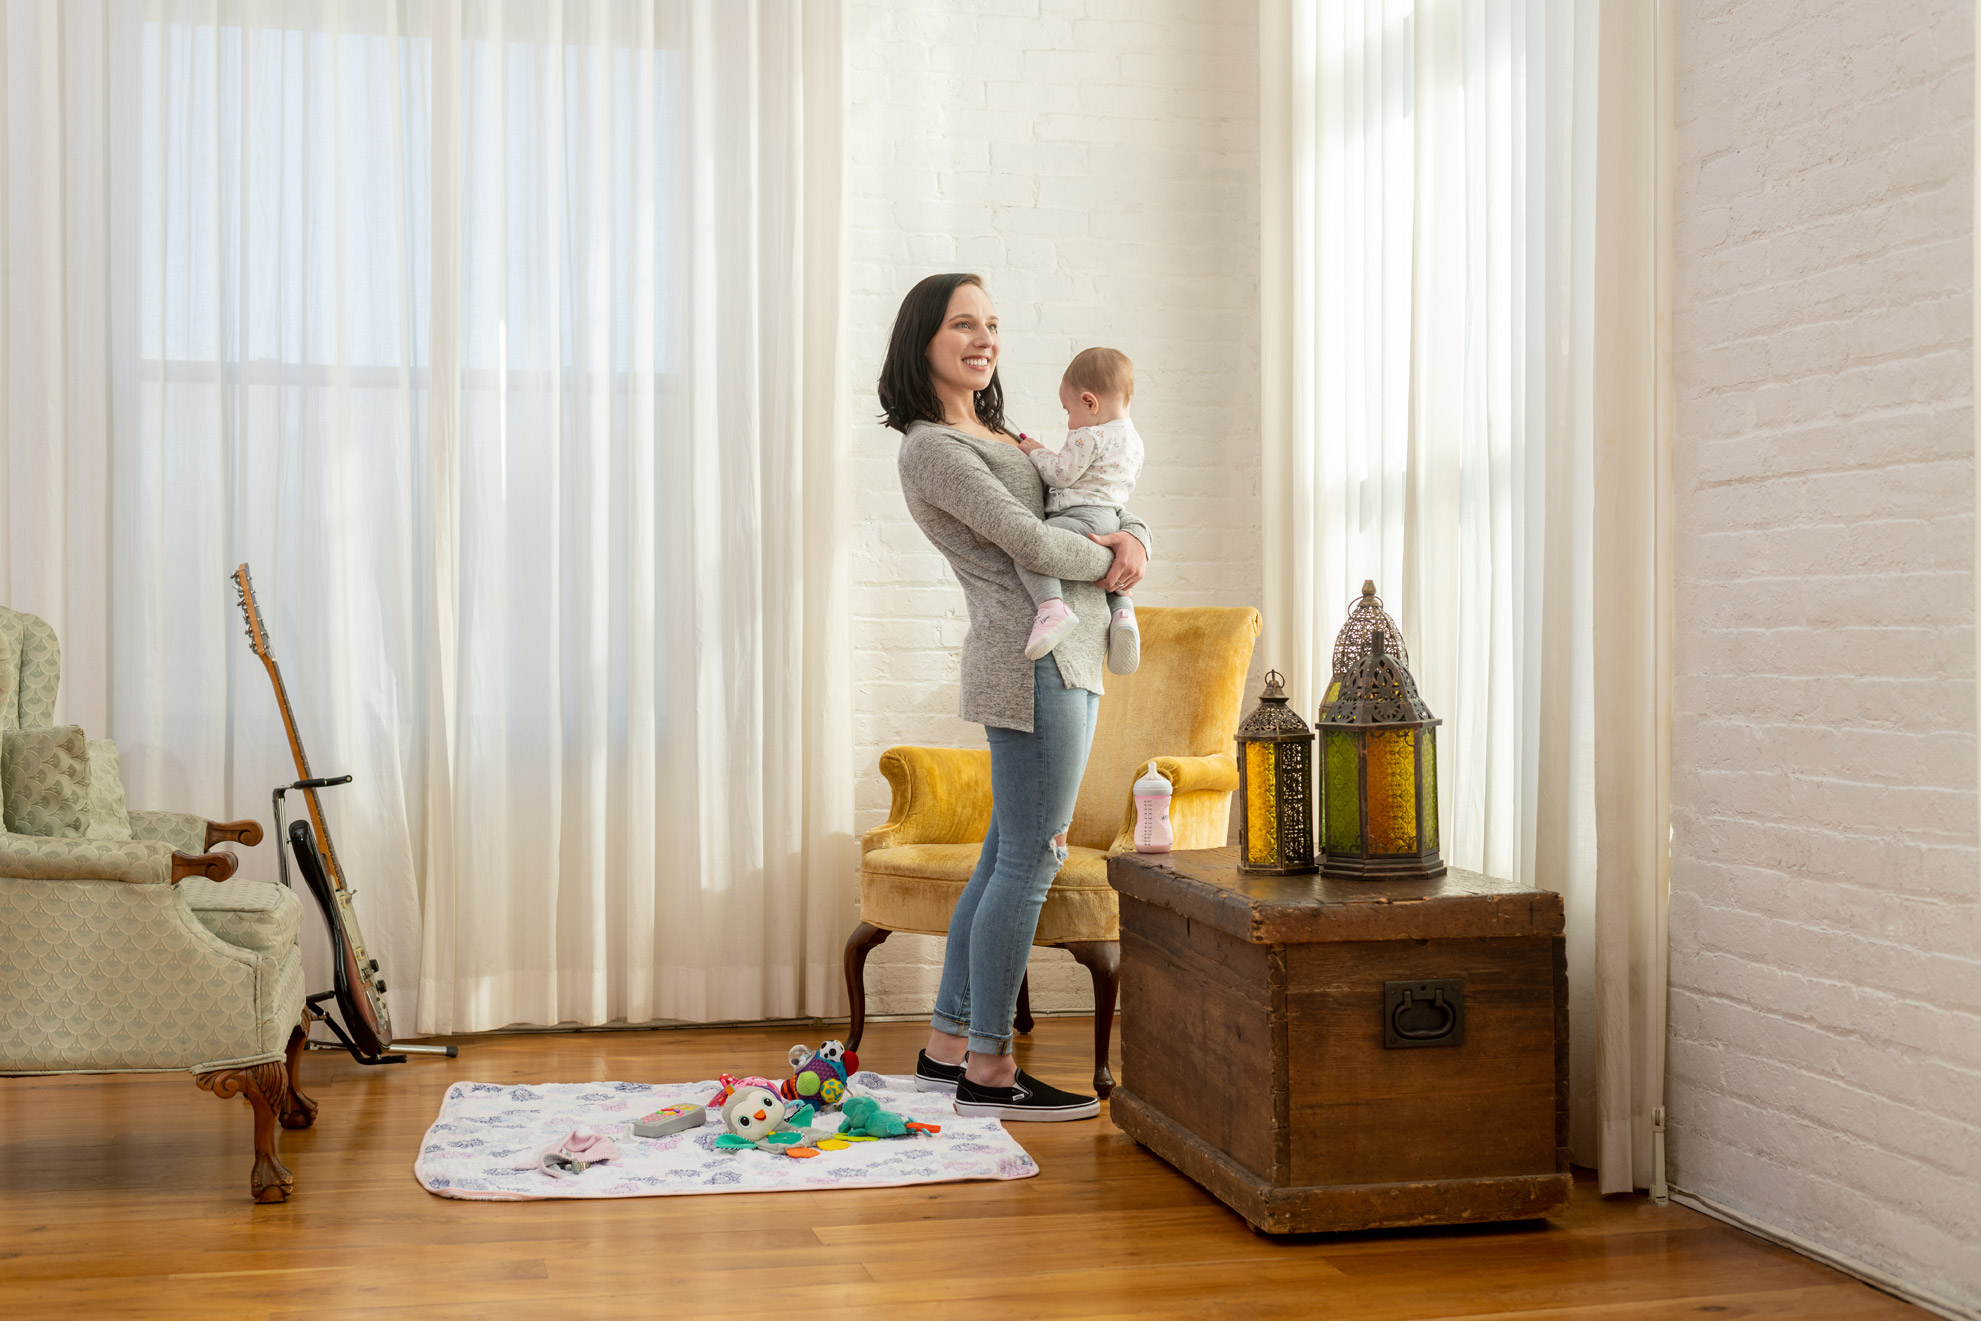 Mother and infant daughter standing in a living room for the Indivior annual report